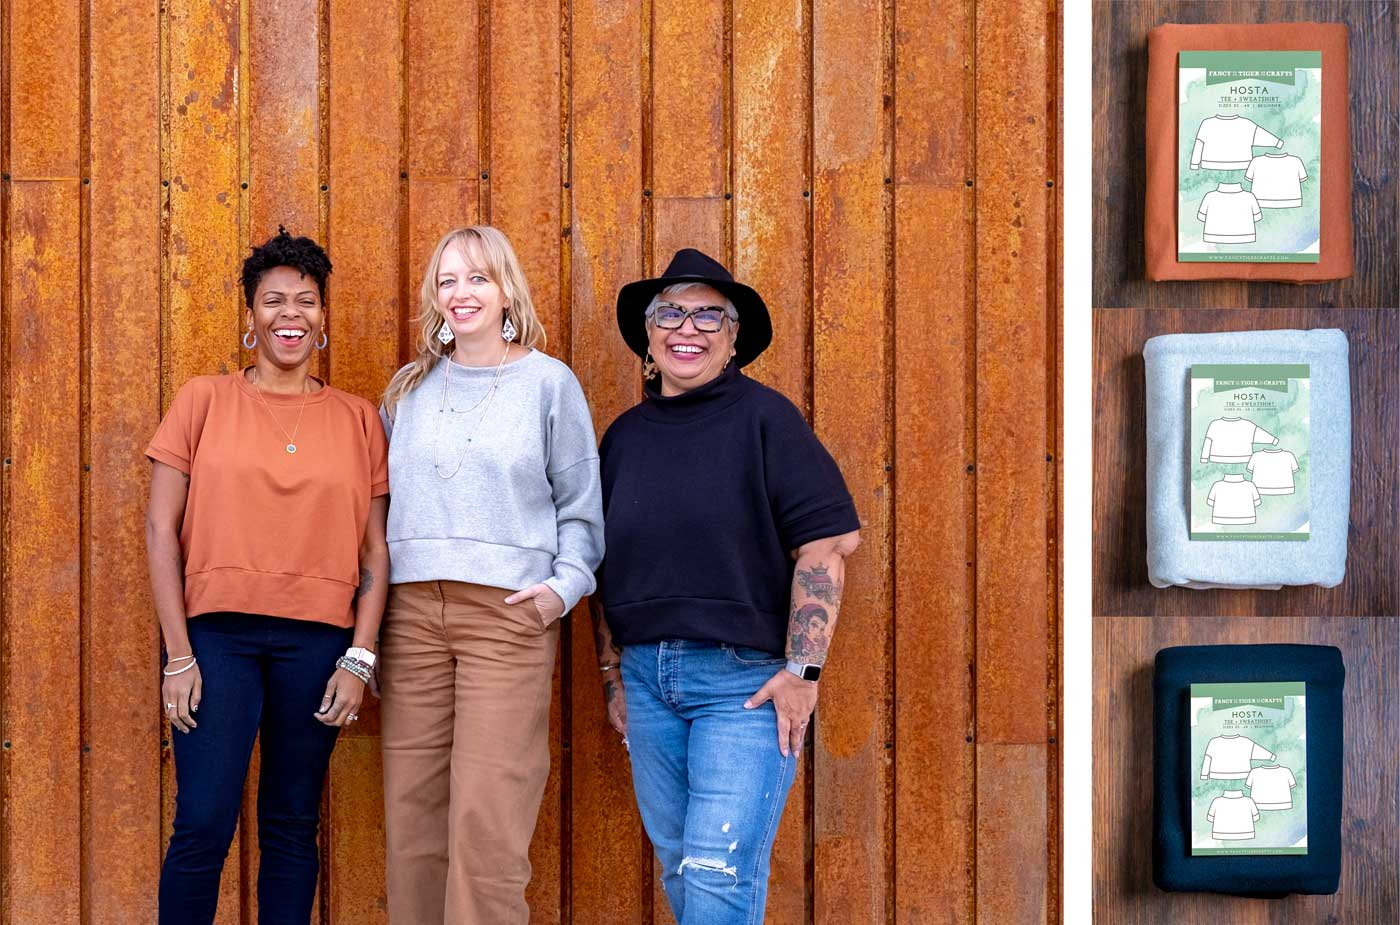 Left: Three women standing in front of a tarnished metal wall, wearing three versions of the Hosta pattern. Kim in a rust-orange Hosta Tee, Amber in a grey sweatshirt, and Yolanda in a black funnel neck top. Right: Three Hosta bundles: Rust Tee, Grey Sweatshirt, and Black Funnel Neck